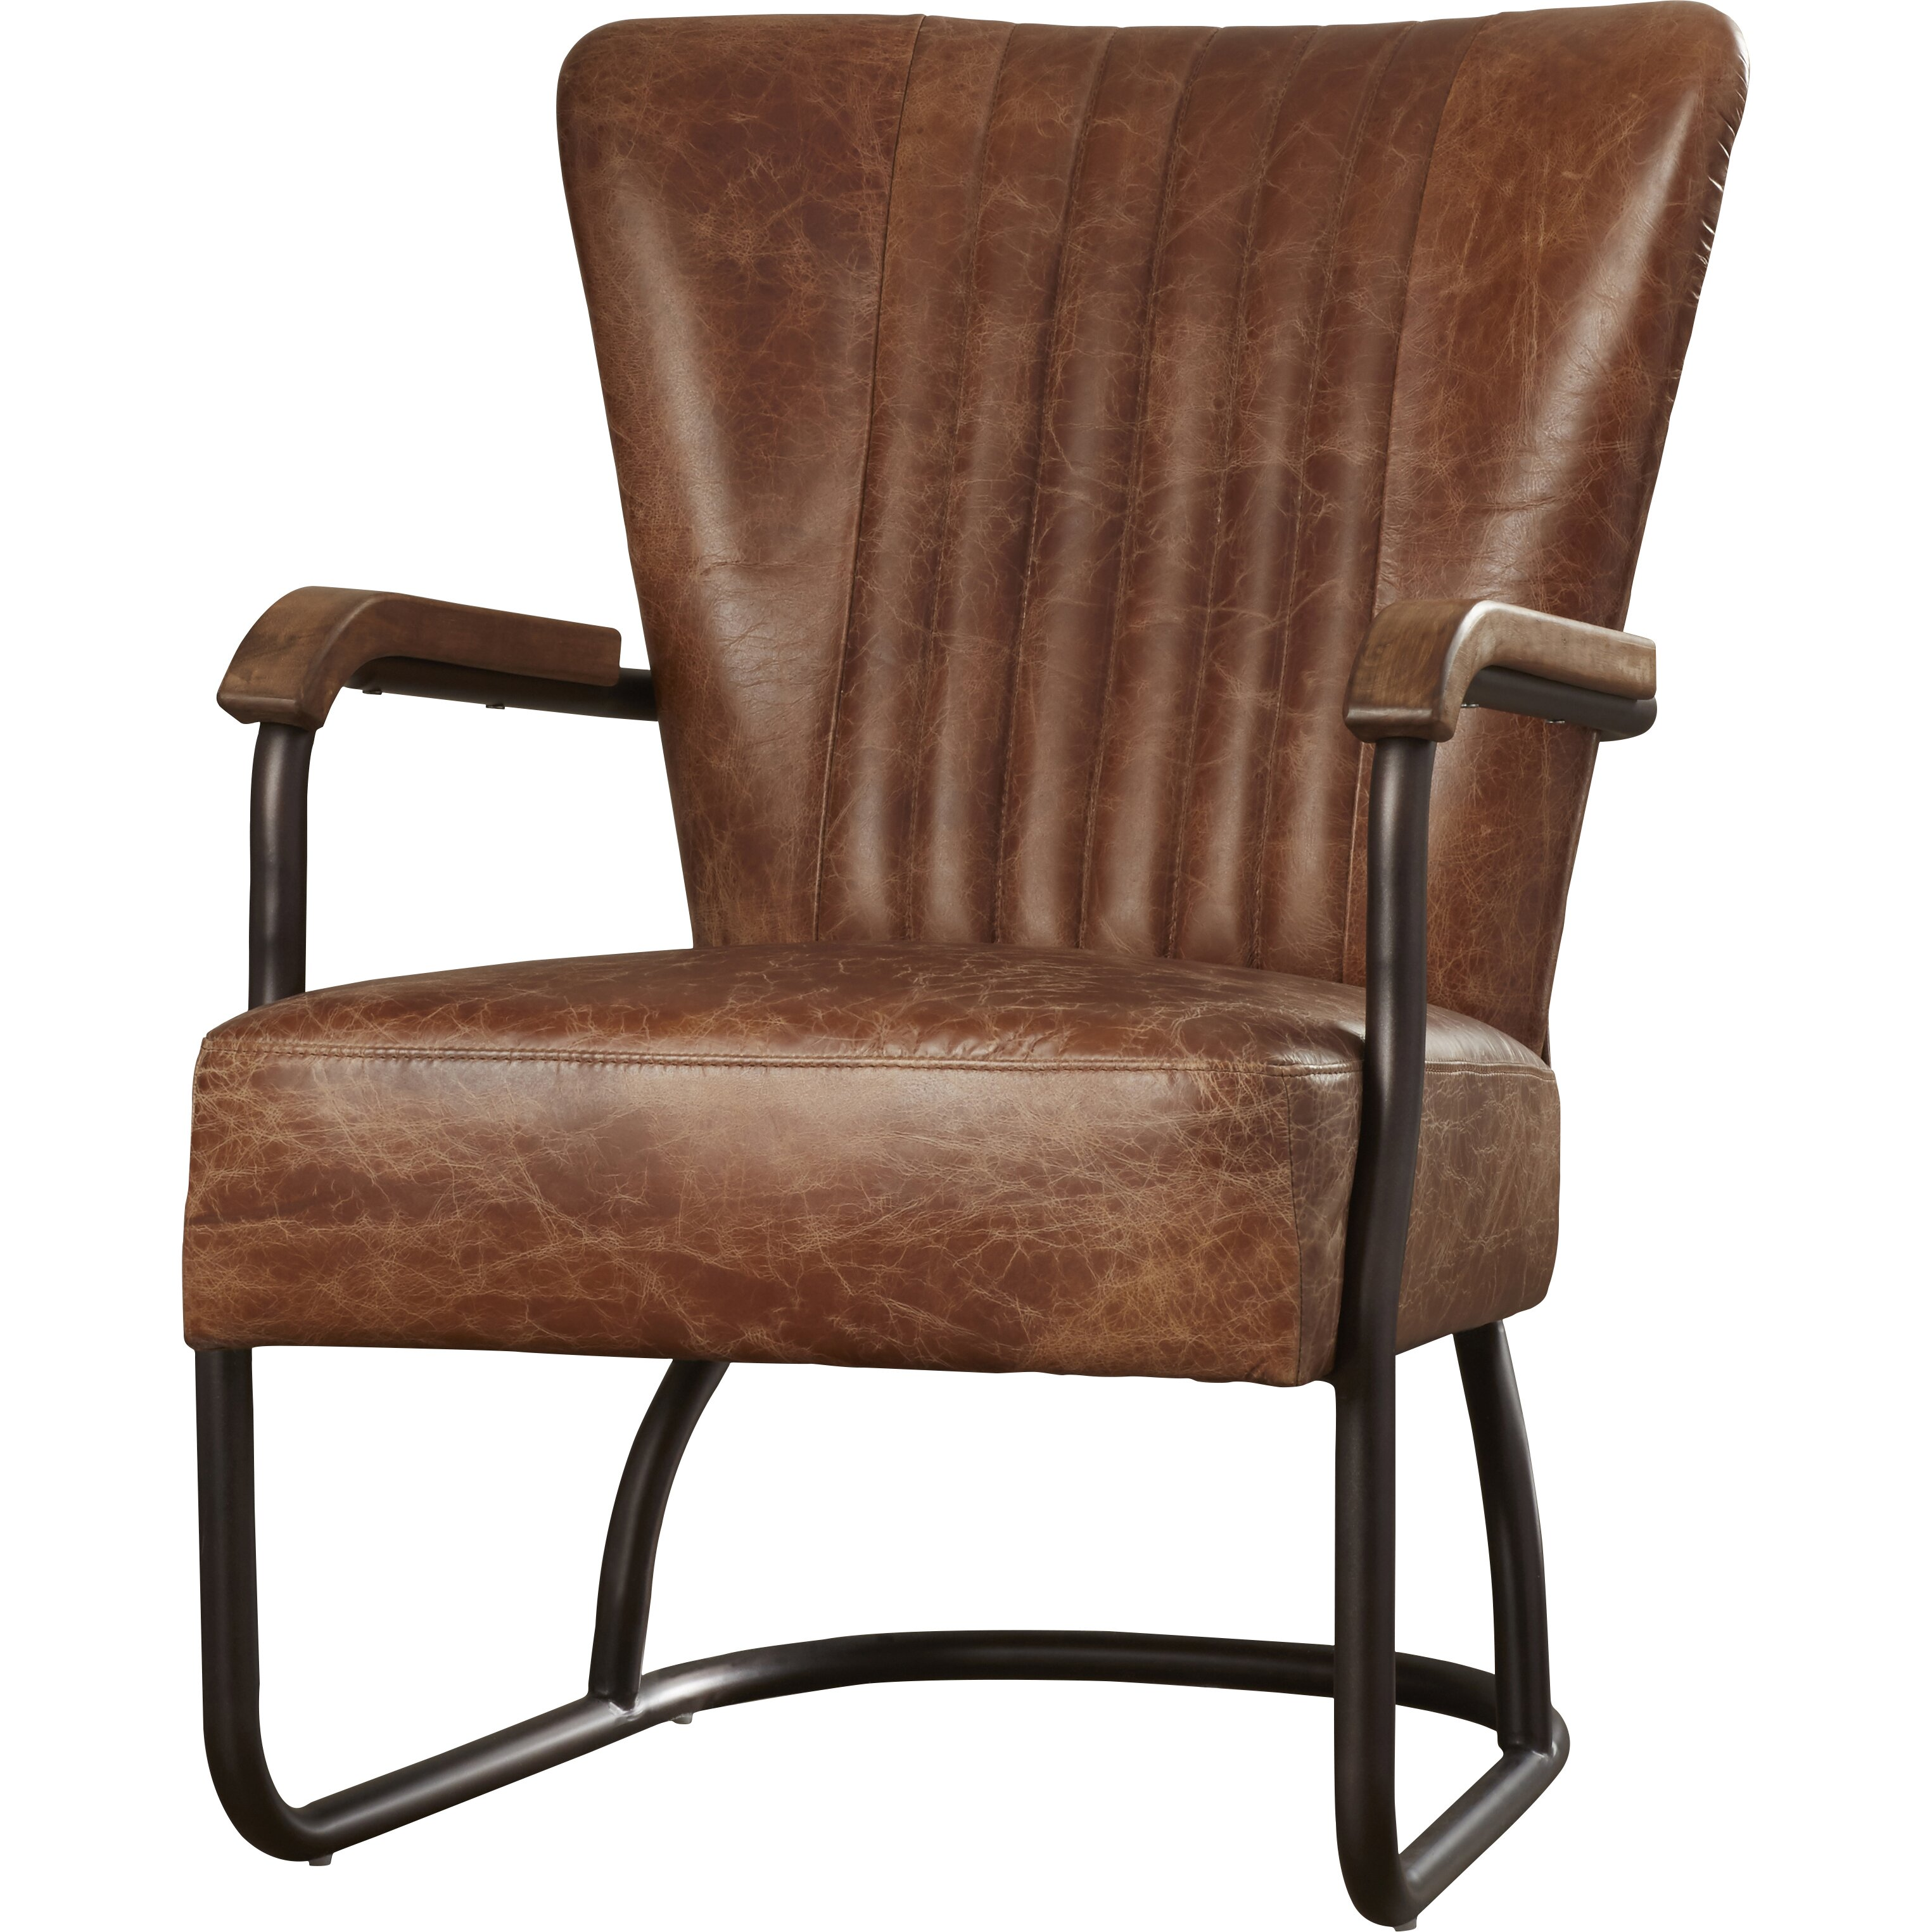 trent austin design cactus lane top grain leather arm chair reviews wayfair. Black Bedroom Furniture Sets. Home Design Ideas